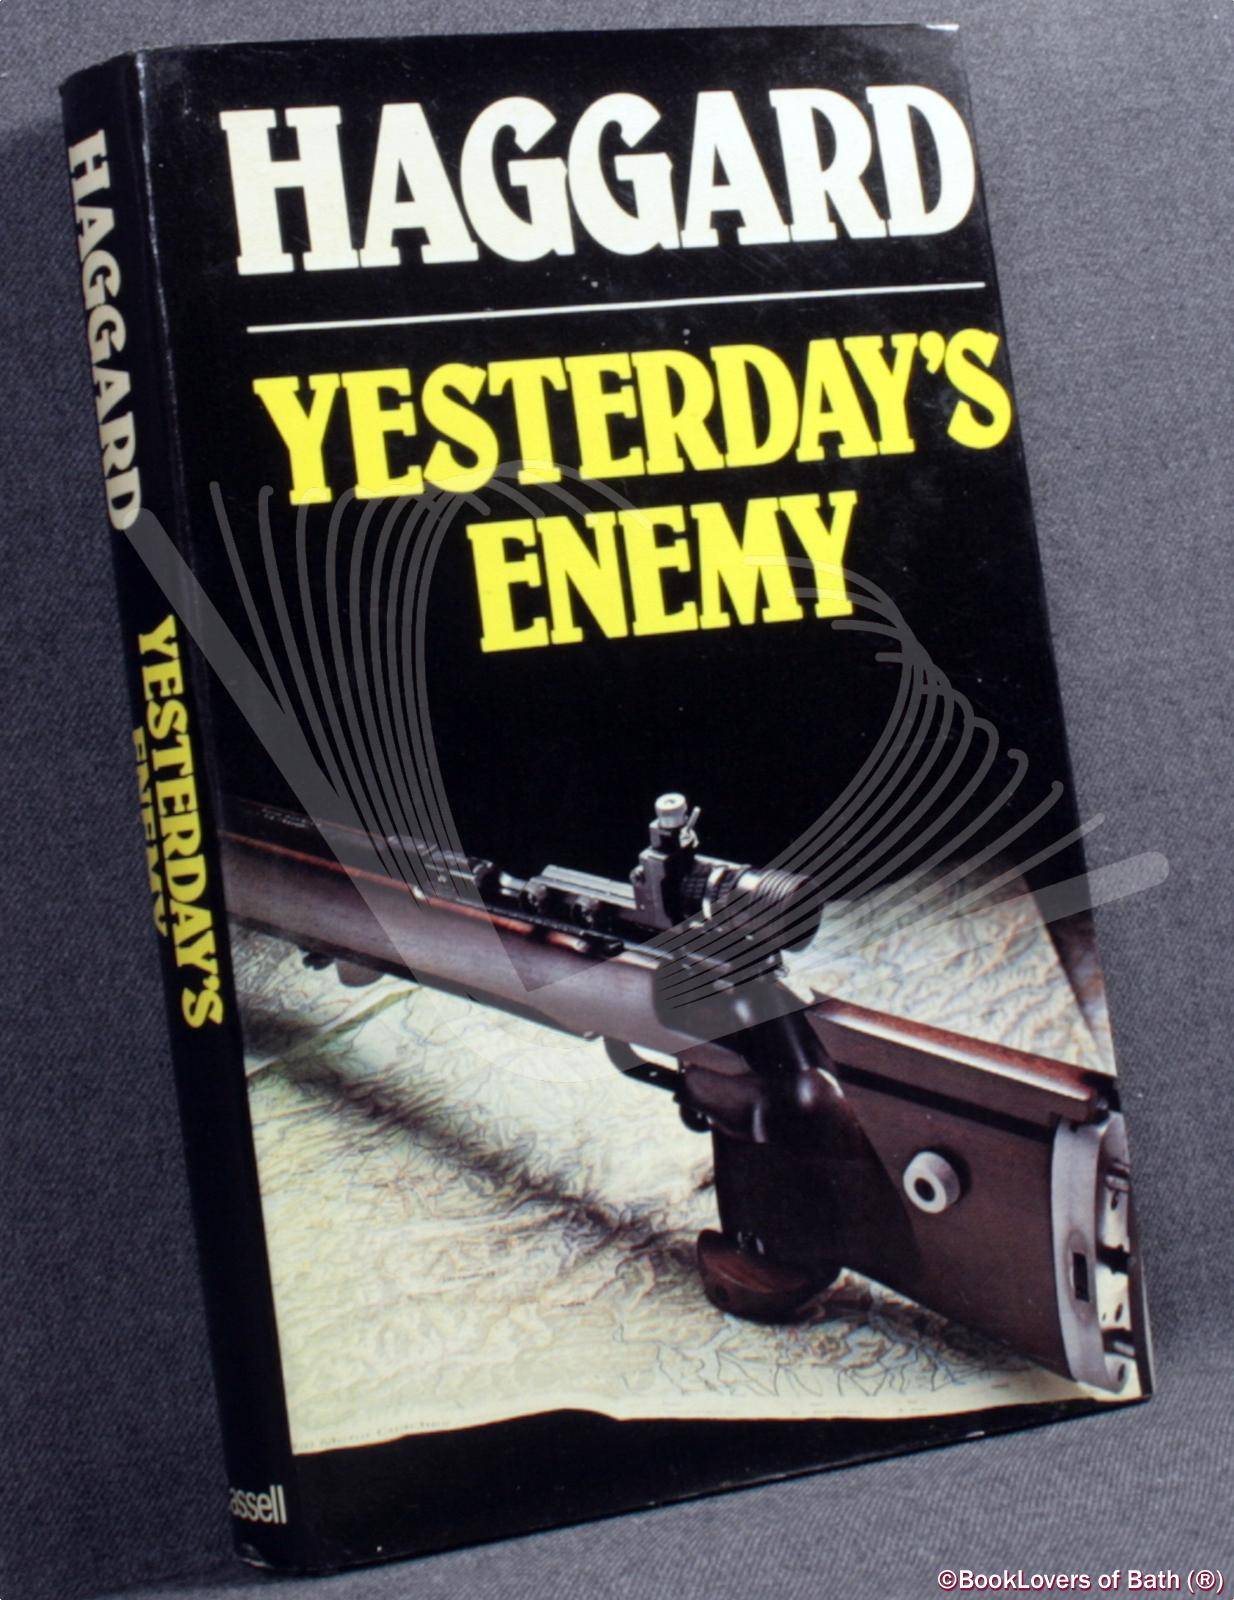 Yesterday's Enemy - William Haggard